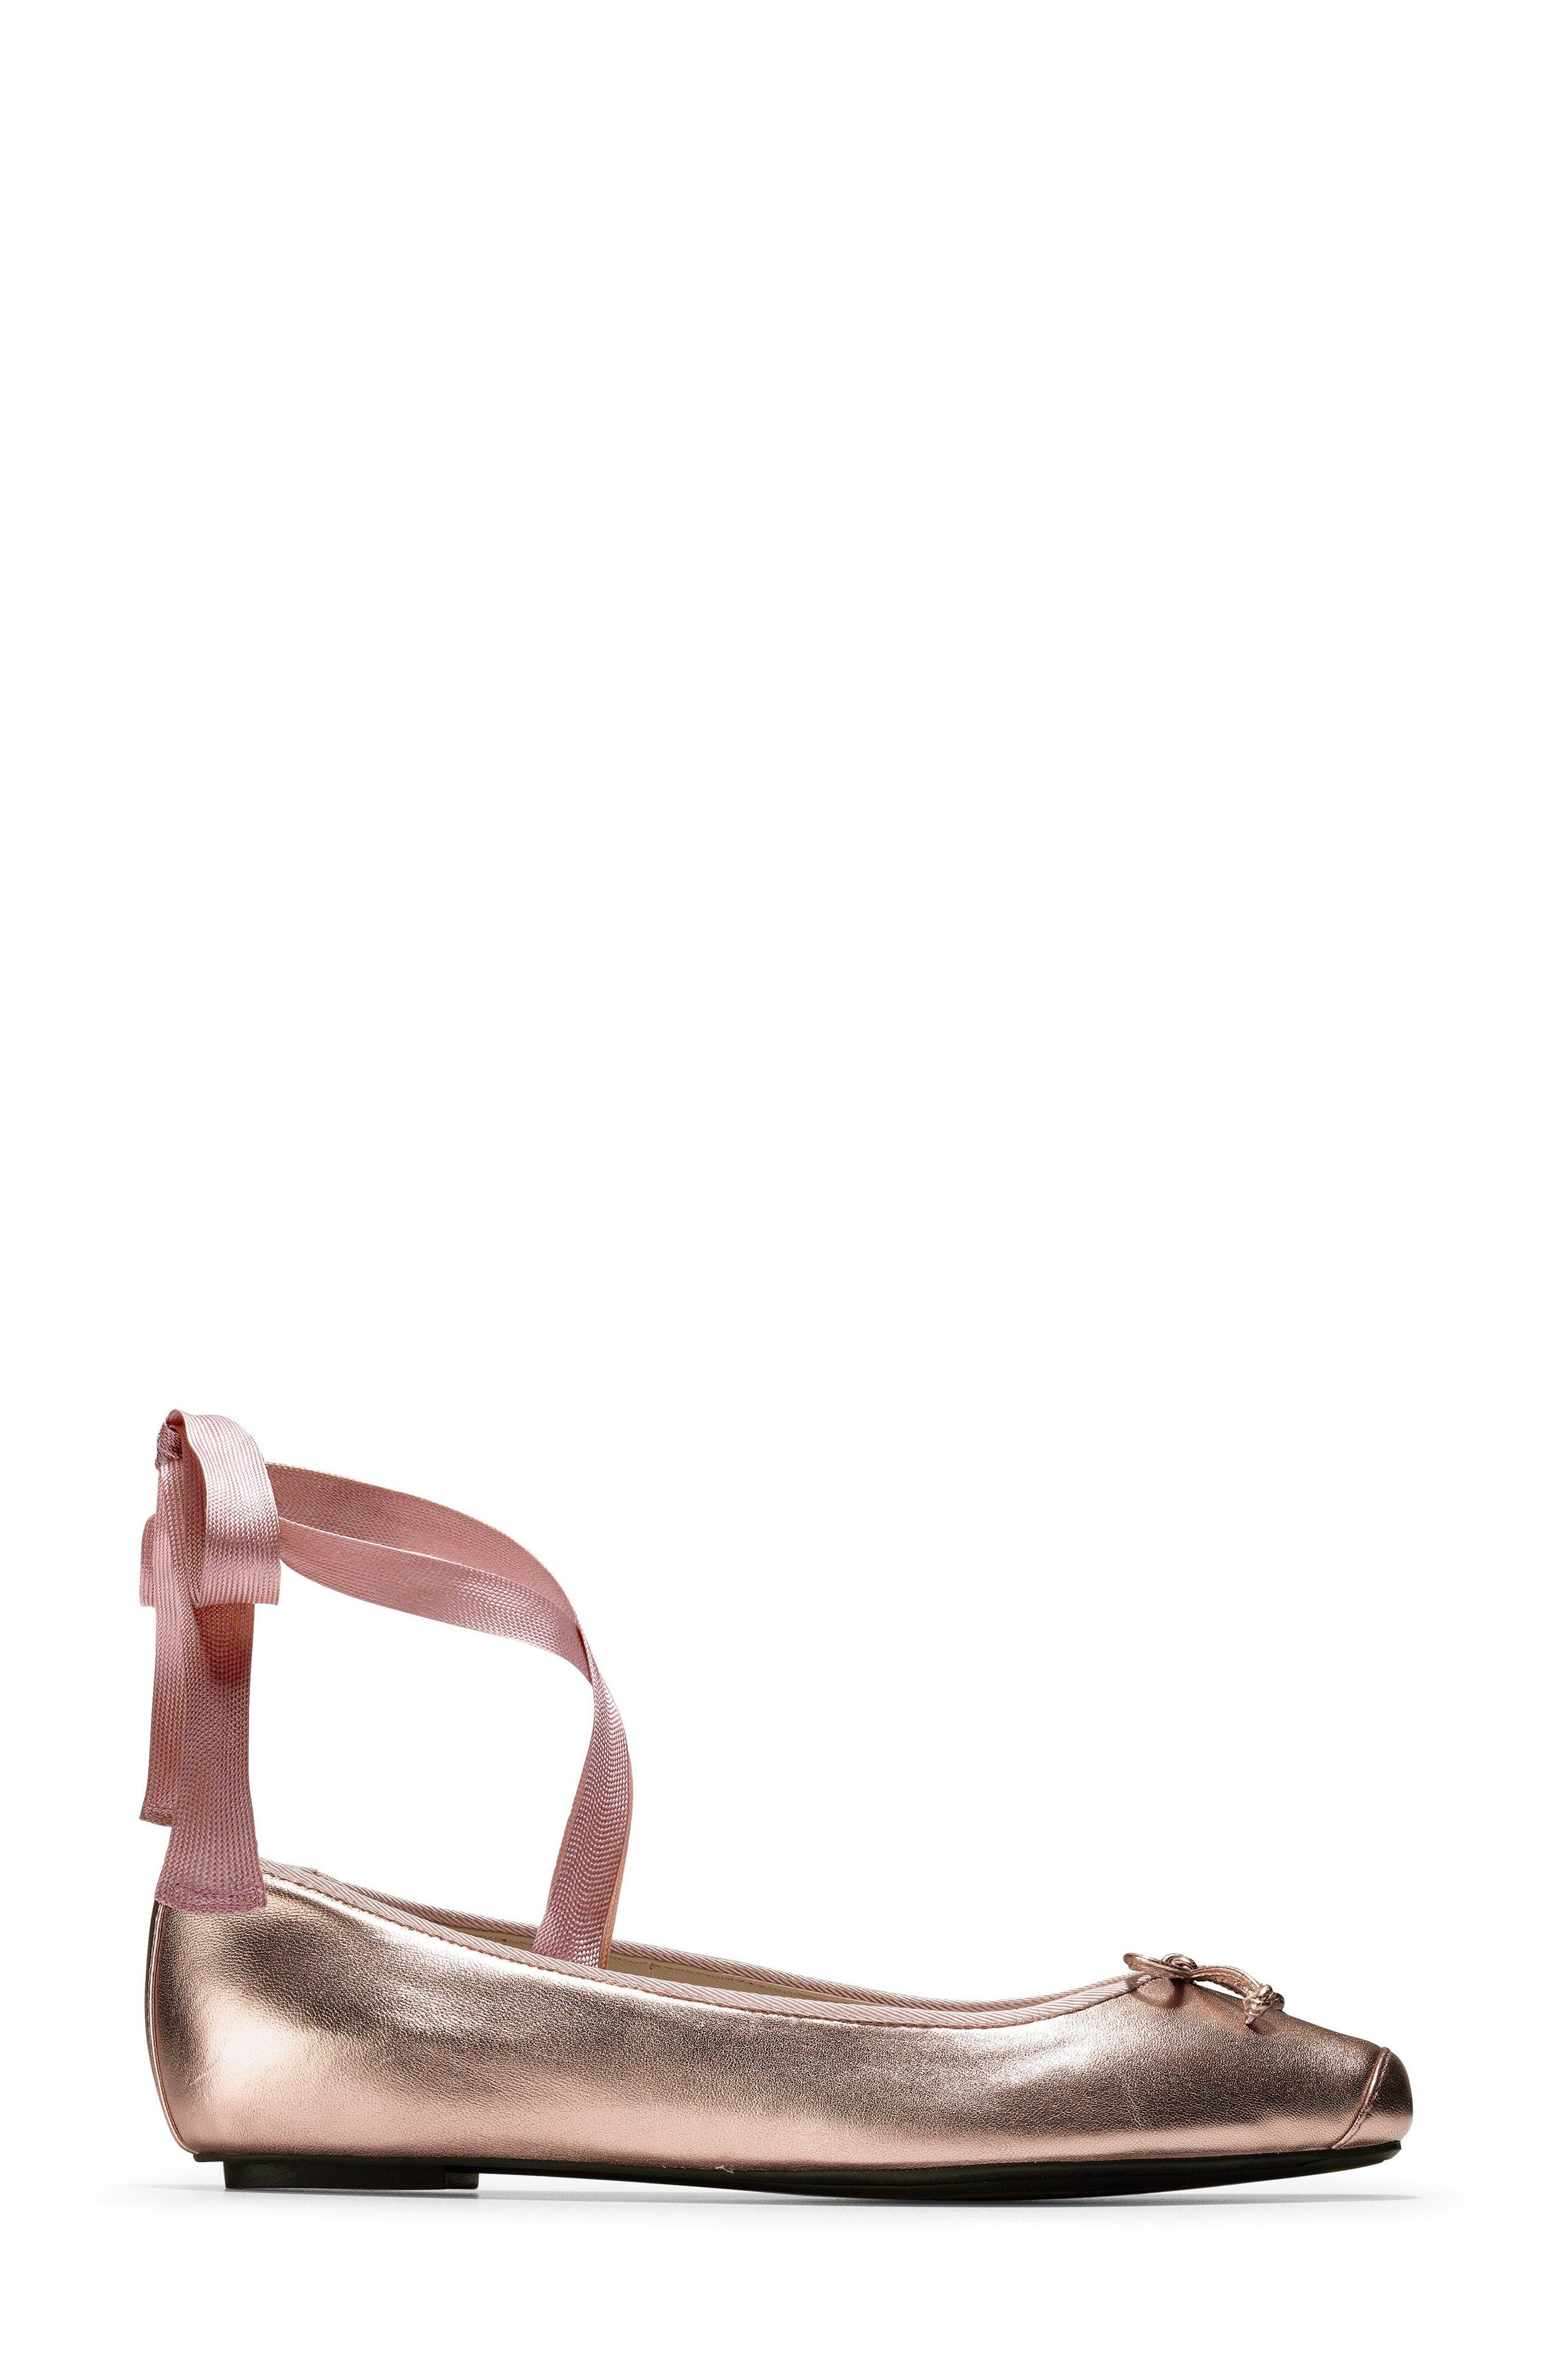 Downtown Ankle Wrap Ballet Flat,                             Alternate thumbnail 3, color,                             Rose Gold Leather